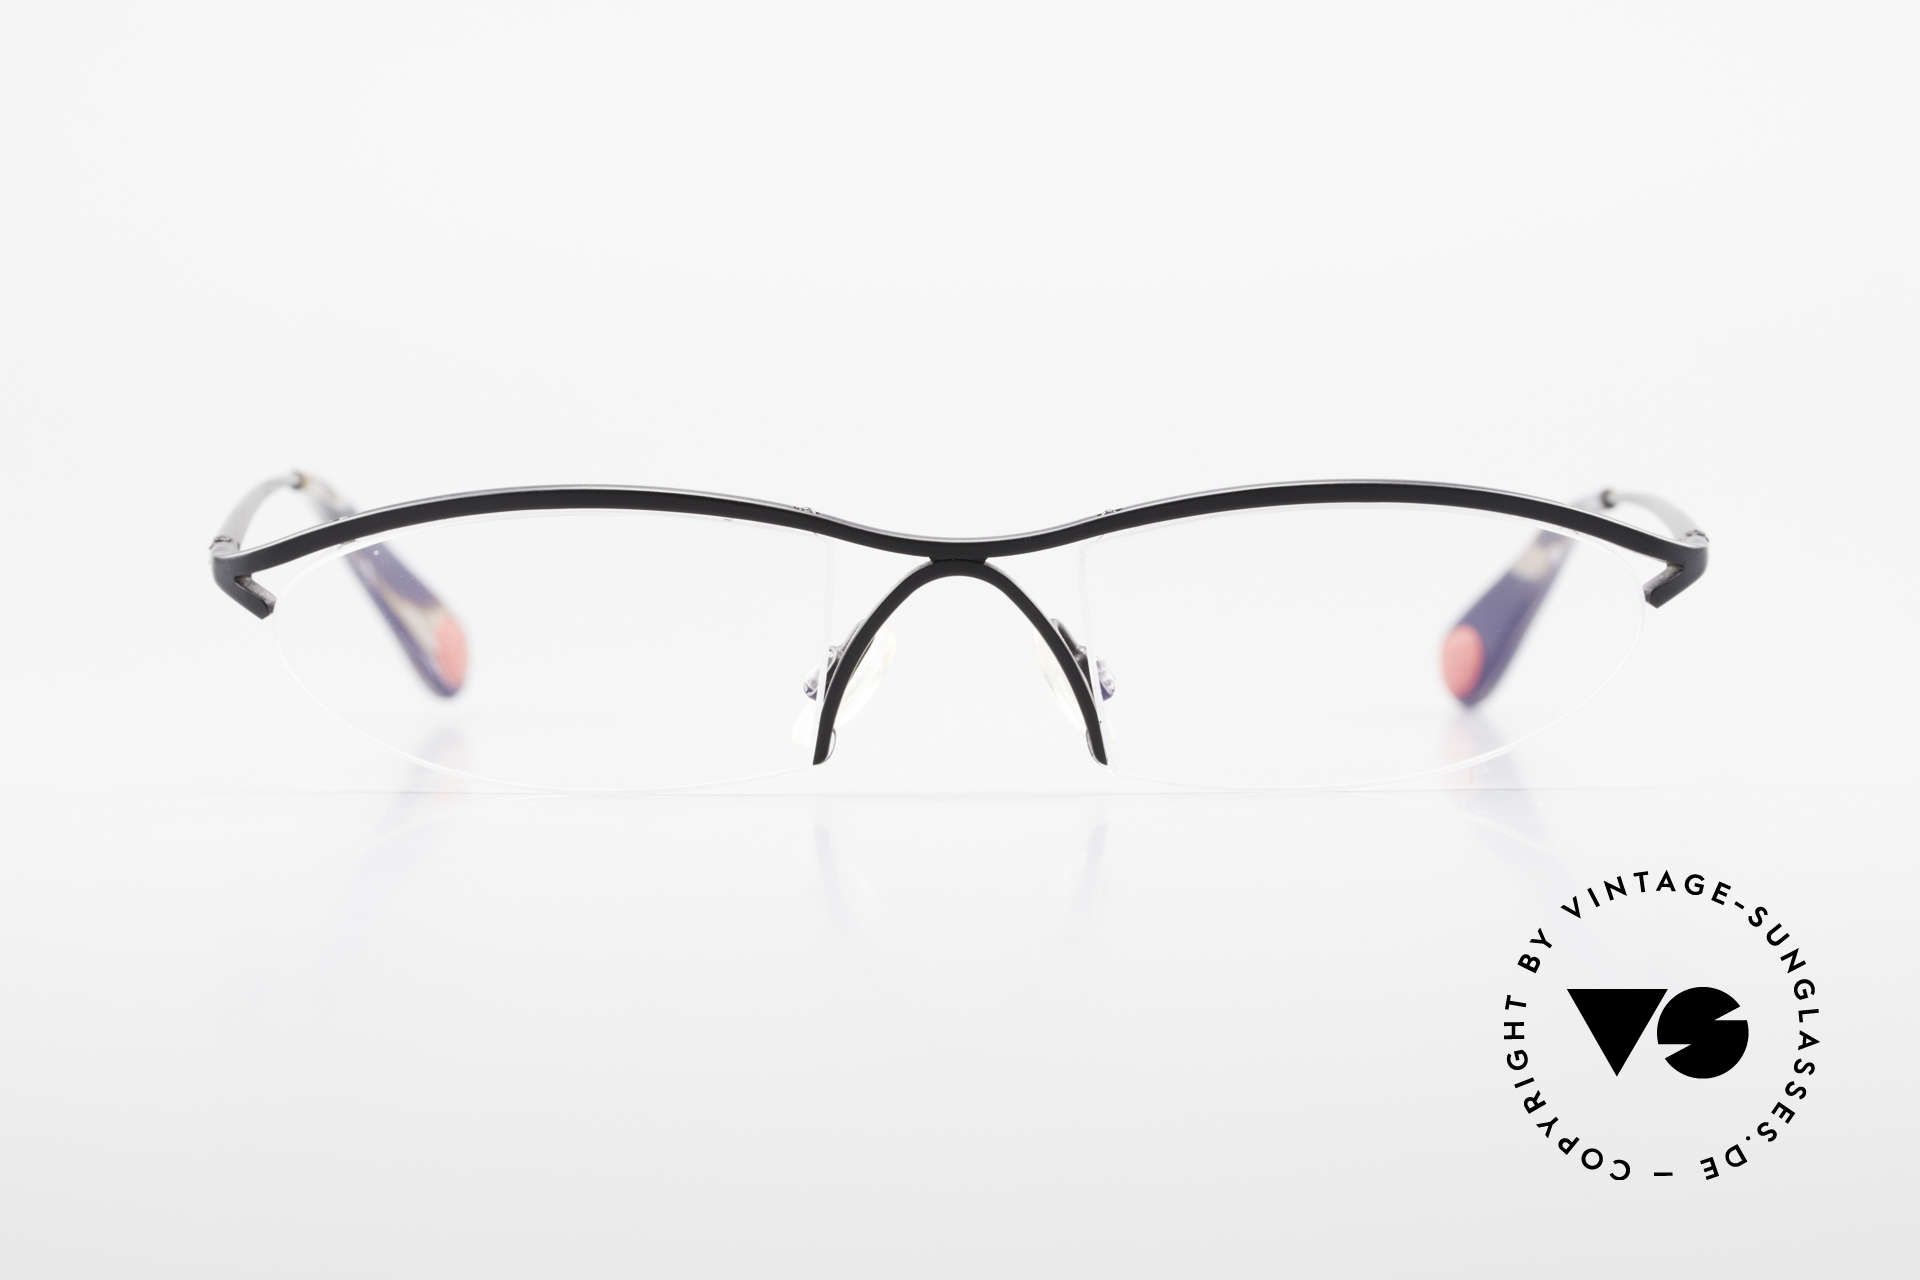 Bugatti 342 Odotype Nylor Frame Semi Rimless, distinctive design of the ODOTYPE SERIES, Made for Men